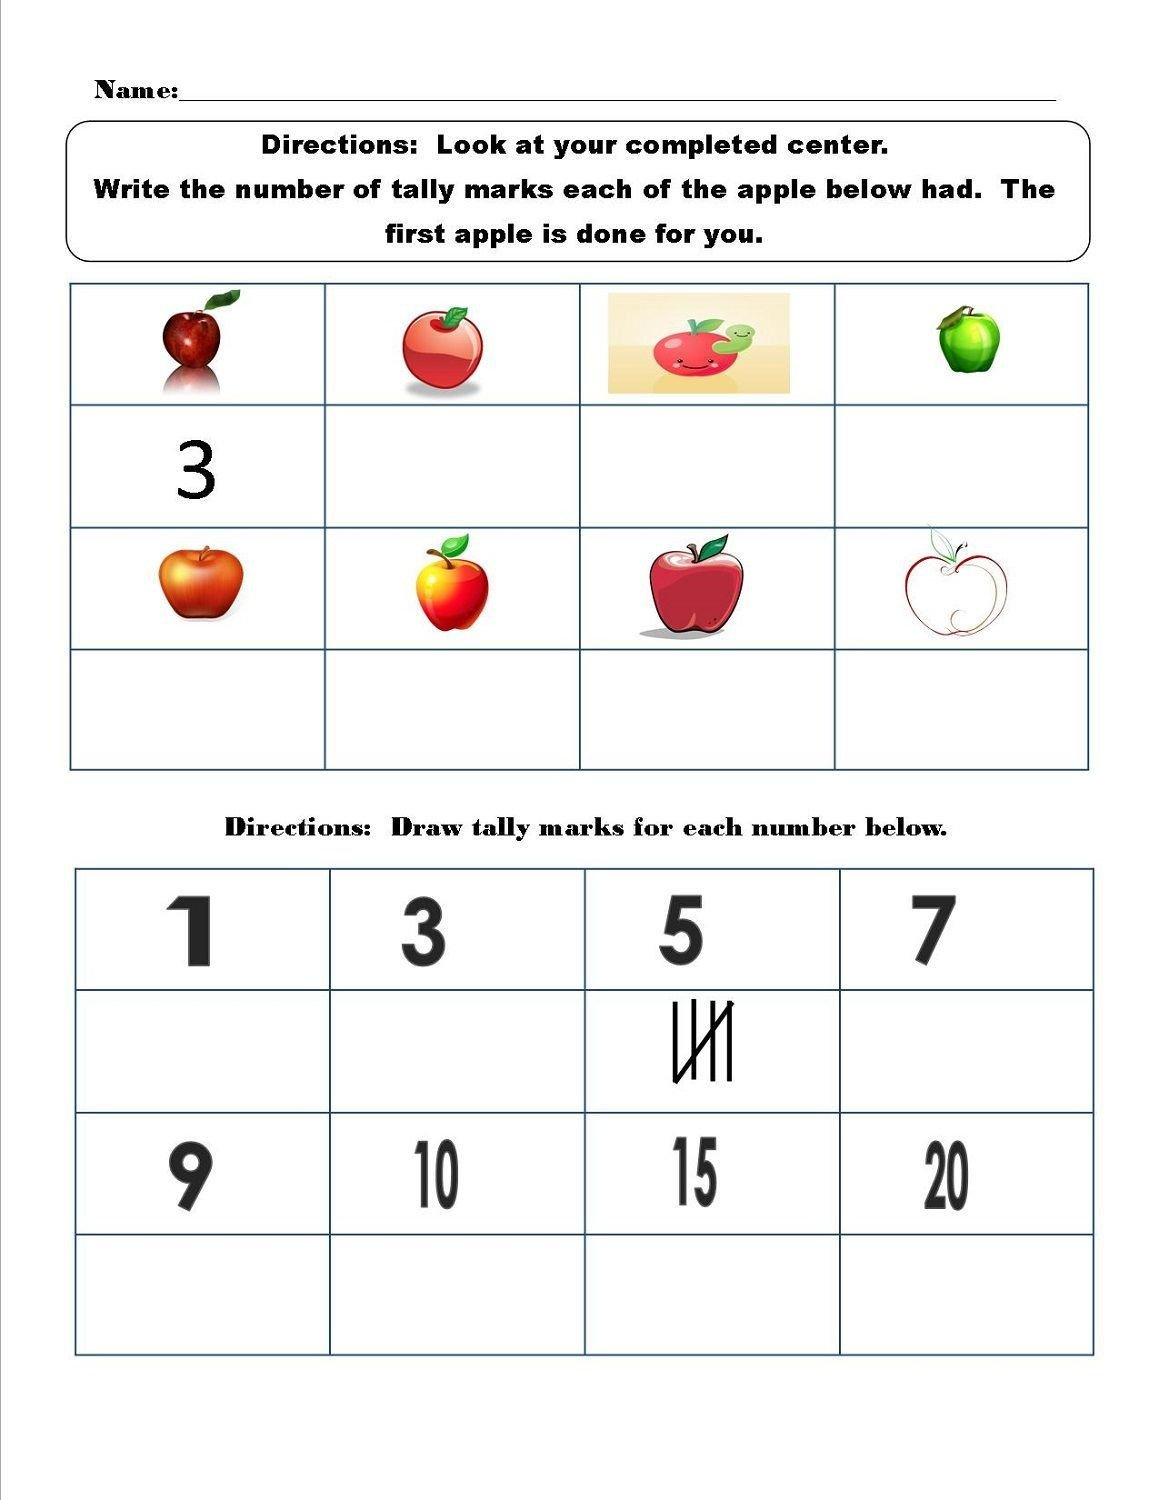 Tally Mark Worksheets for Kindergarten Tally Mark Worksheet for Kids K5 Worksheets